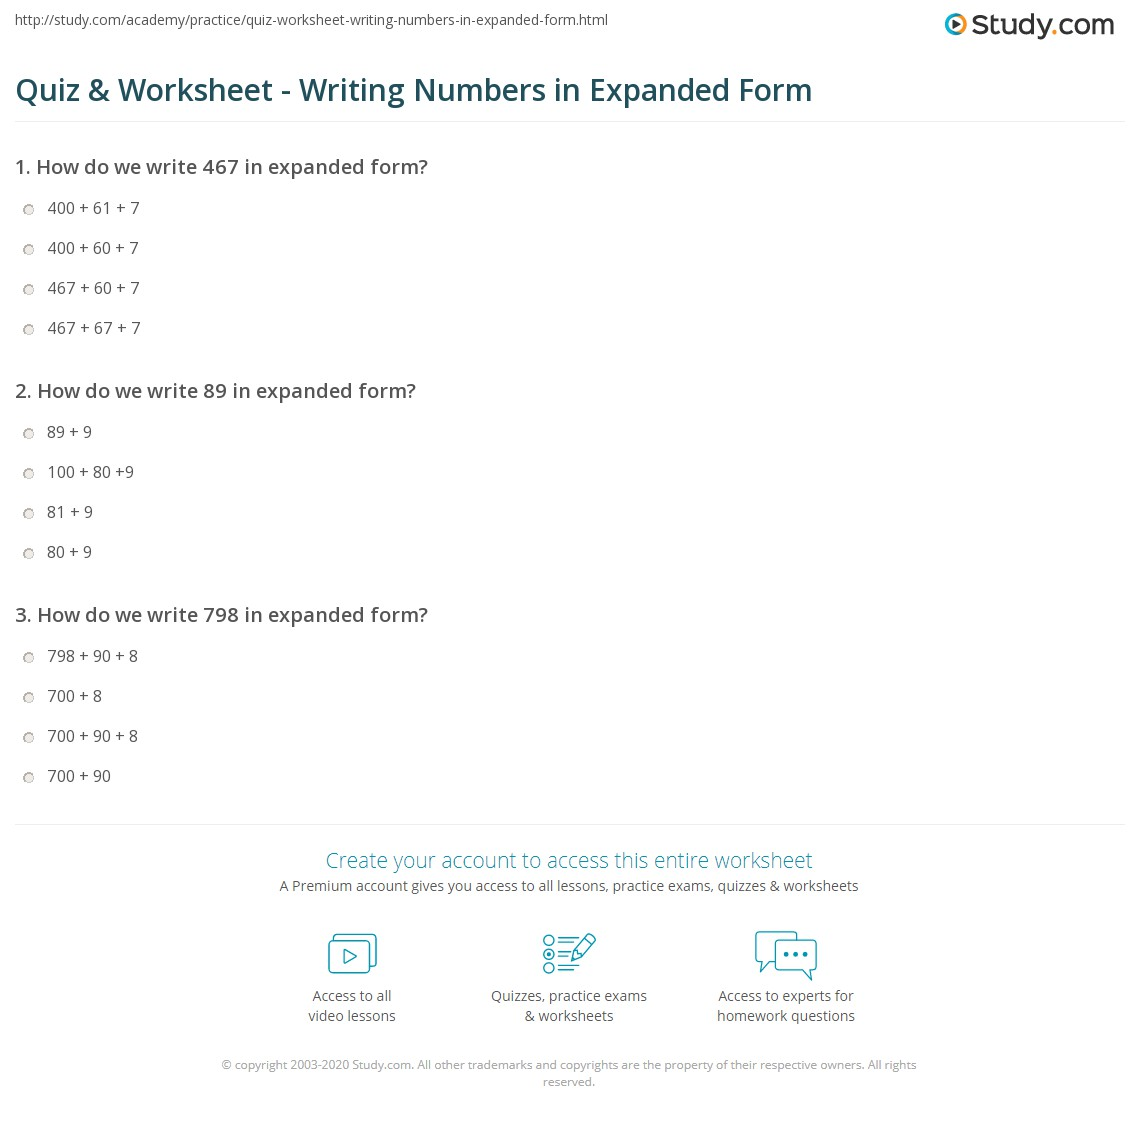 math worksheet : quiz  worksheet  writing numbers in expanded form  study  : Decimal Expanded Form Worksheets